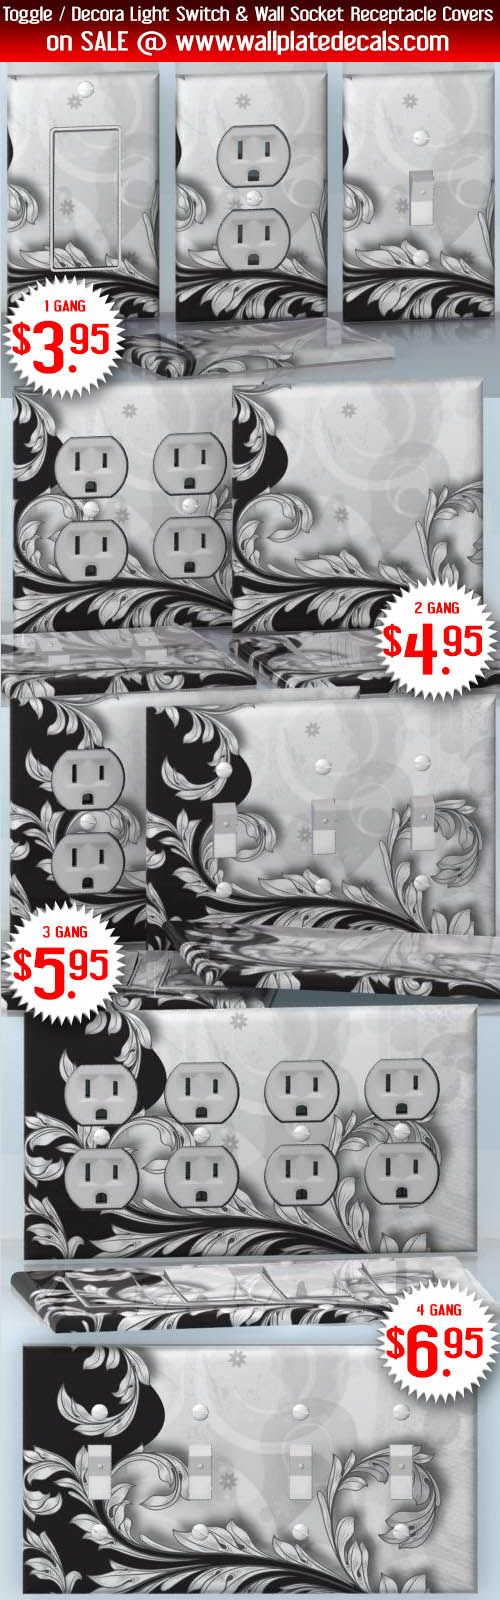 DIY Do It Yourself Home Decor - Easy to apply wall plate wraps | Black & White Harmony  Black & white background with vines  wallplate skin stickers for single, double, triple and quadruple Toggle and Decora Light Switches, Wall Socket Duplex Receptacles, and blank decals without inside cuts for special outlets | On SALE now only $3.95 - $6.95